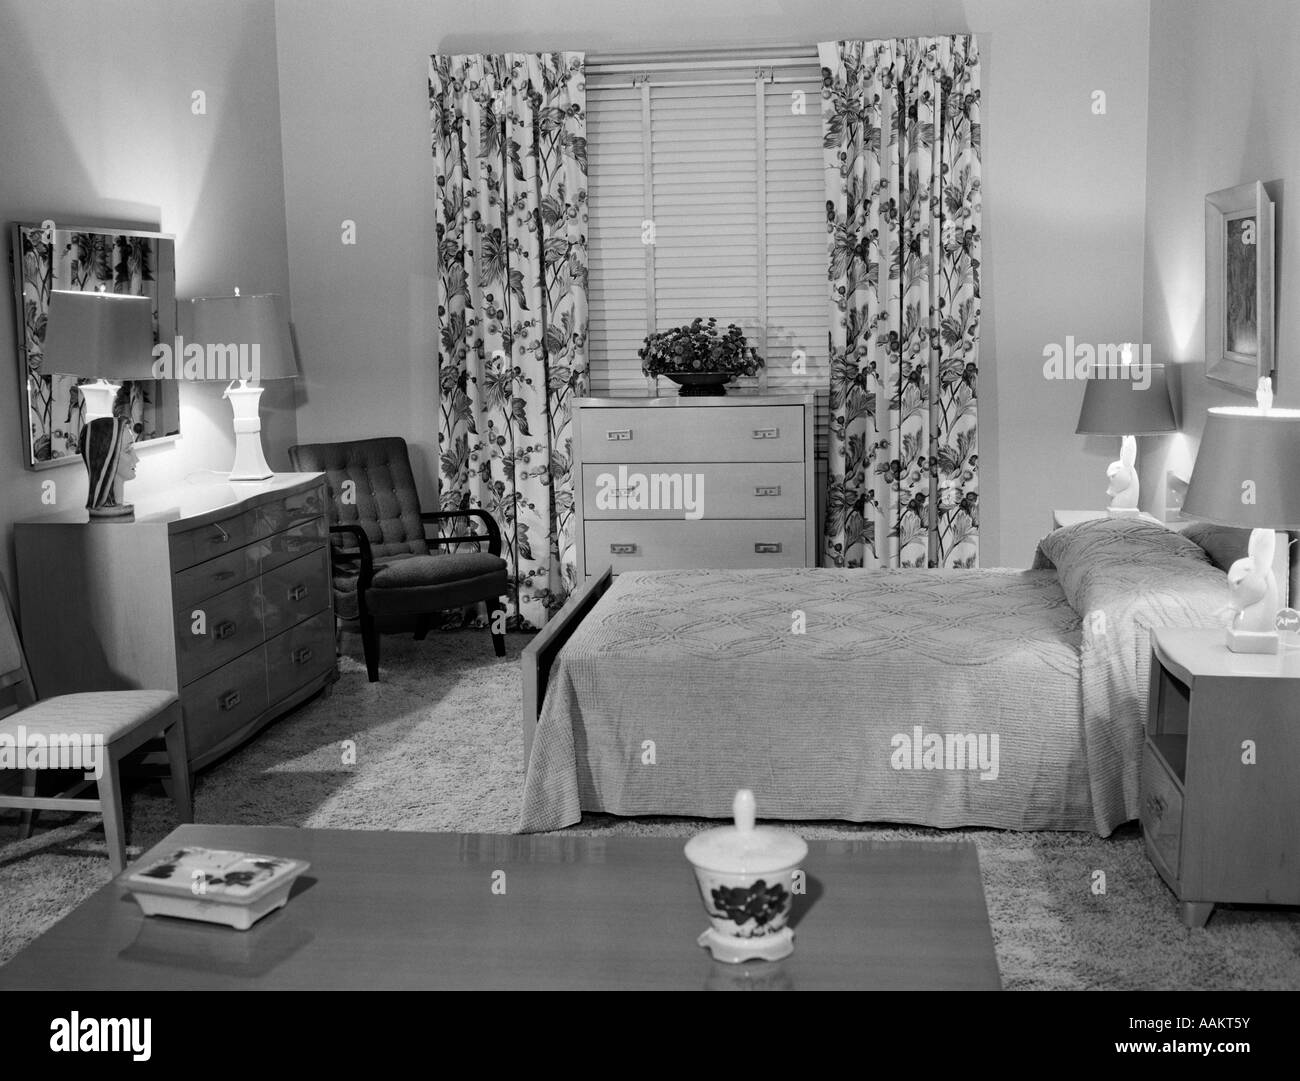 1950s BEDROOM INTERIOR WITH FLOOR LENGTH FLORAL CURTAINS VENETIAN BLINDS  CHENILLE BEDSPREAD U0026 4 TABLE LAMPS